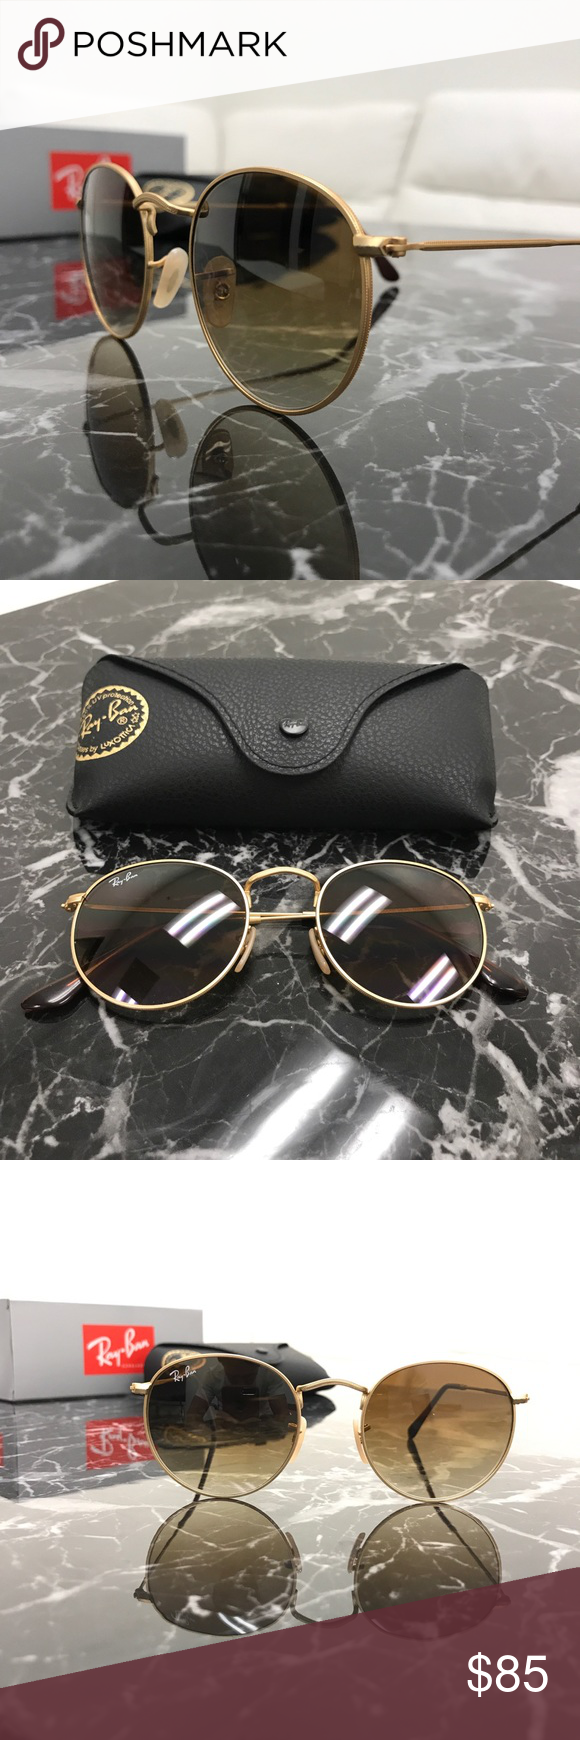 33b21d132f2 100% Authentic Ray-Ban Round Lens Sunglasses NWT Treat yourself to a  beautiful pair of brand new Ray-Ban sunglasses for 65% off retail price!